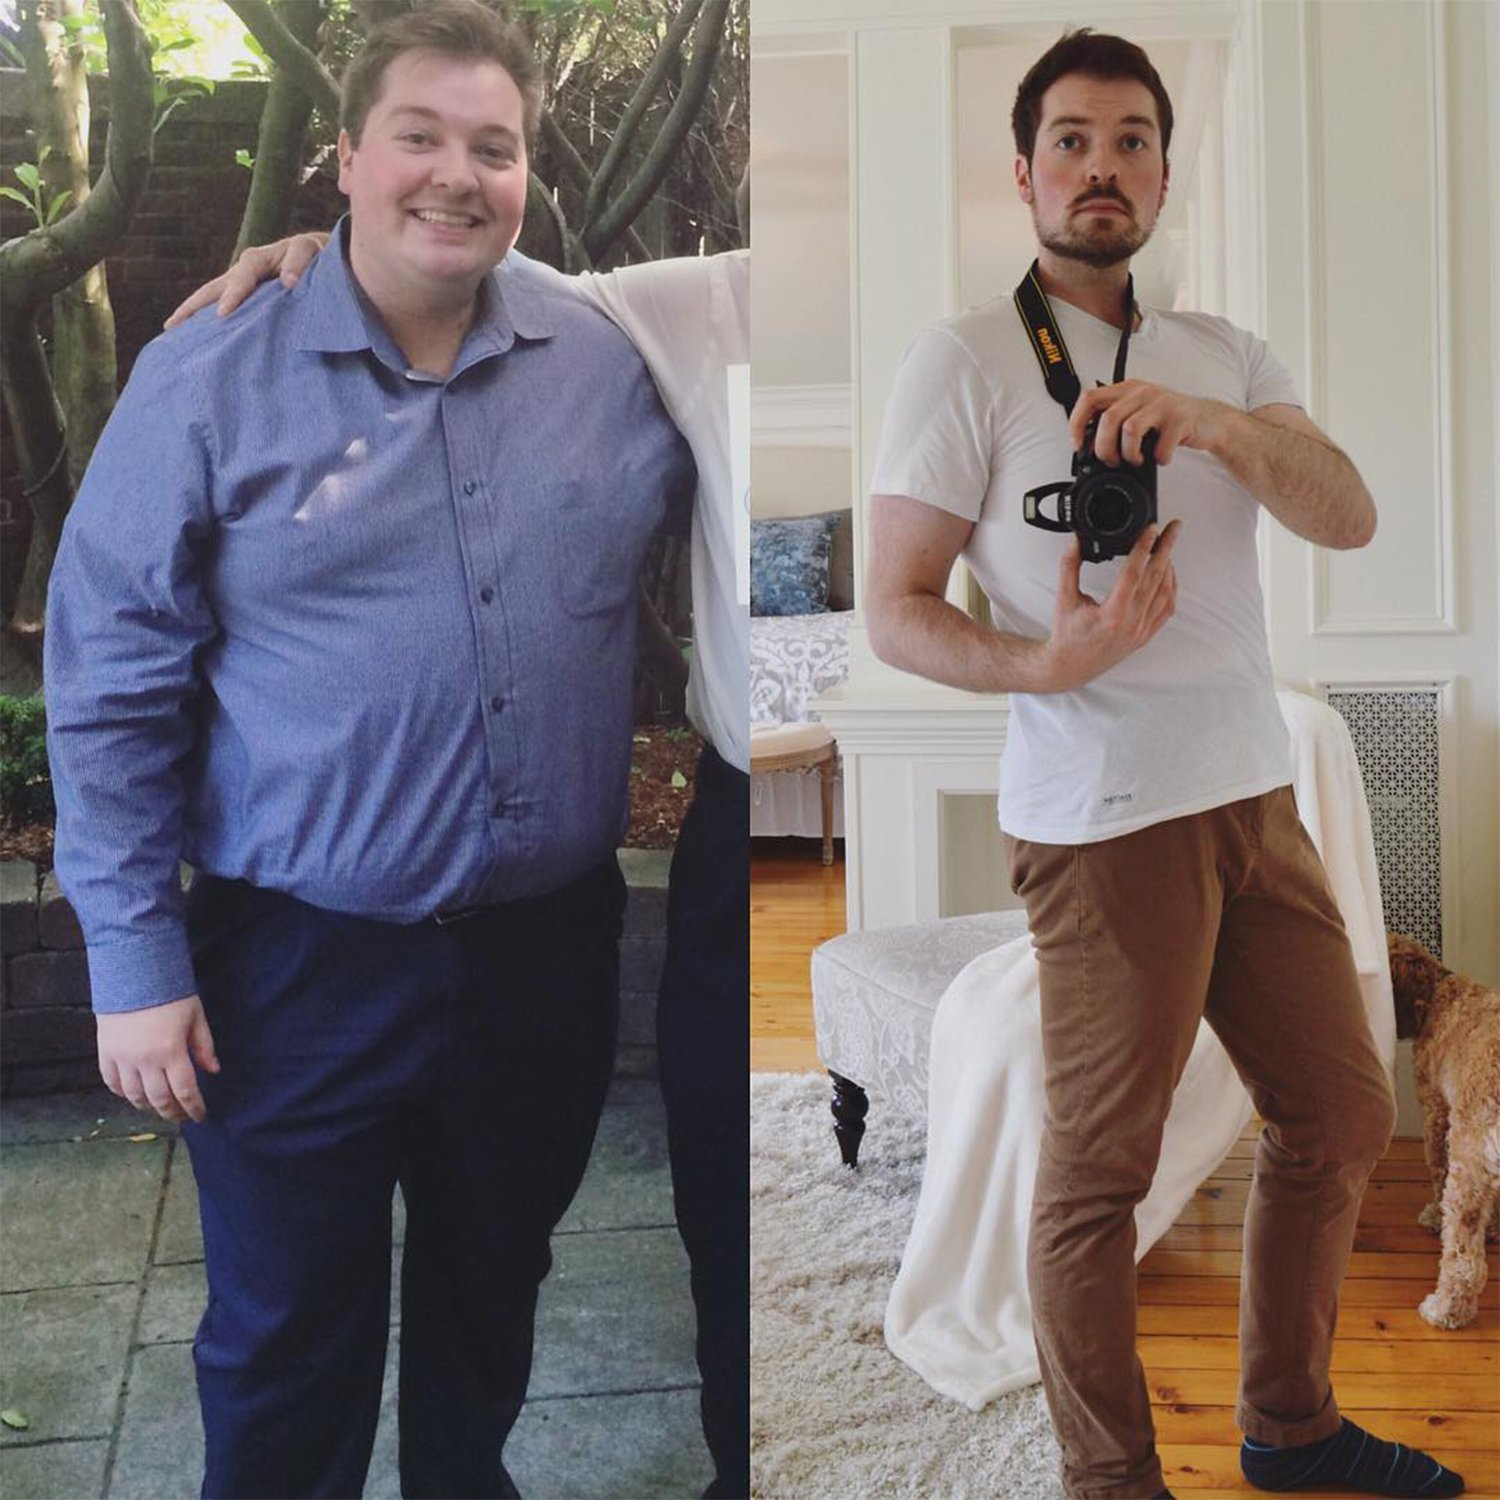 Doctor Sheds 125 Lbs With The Help Of Intermittent